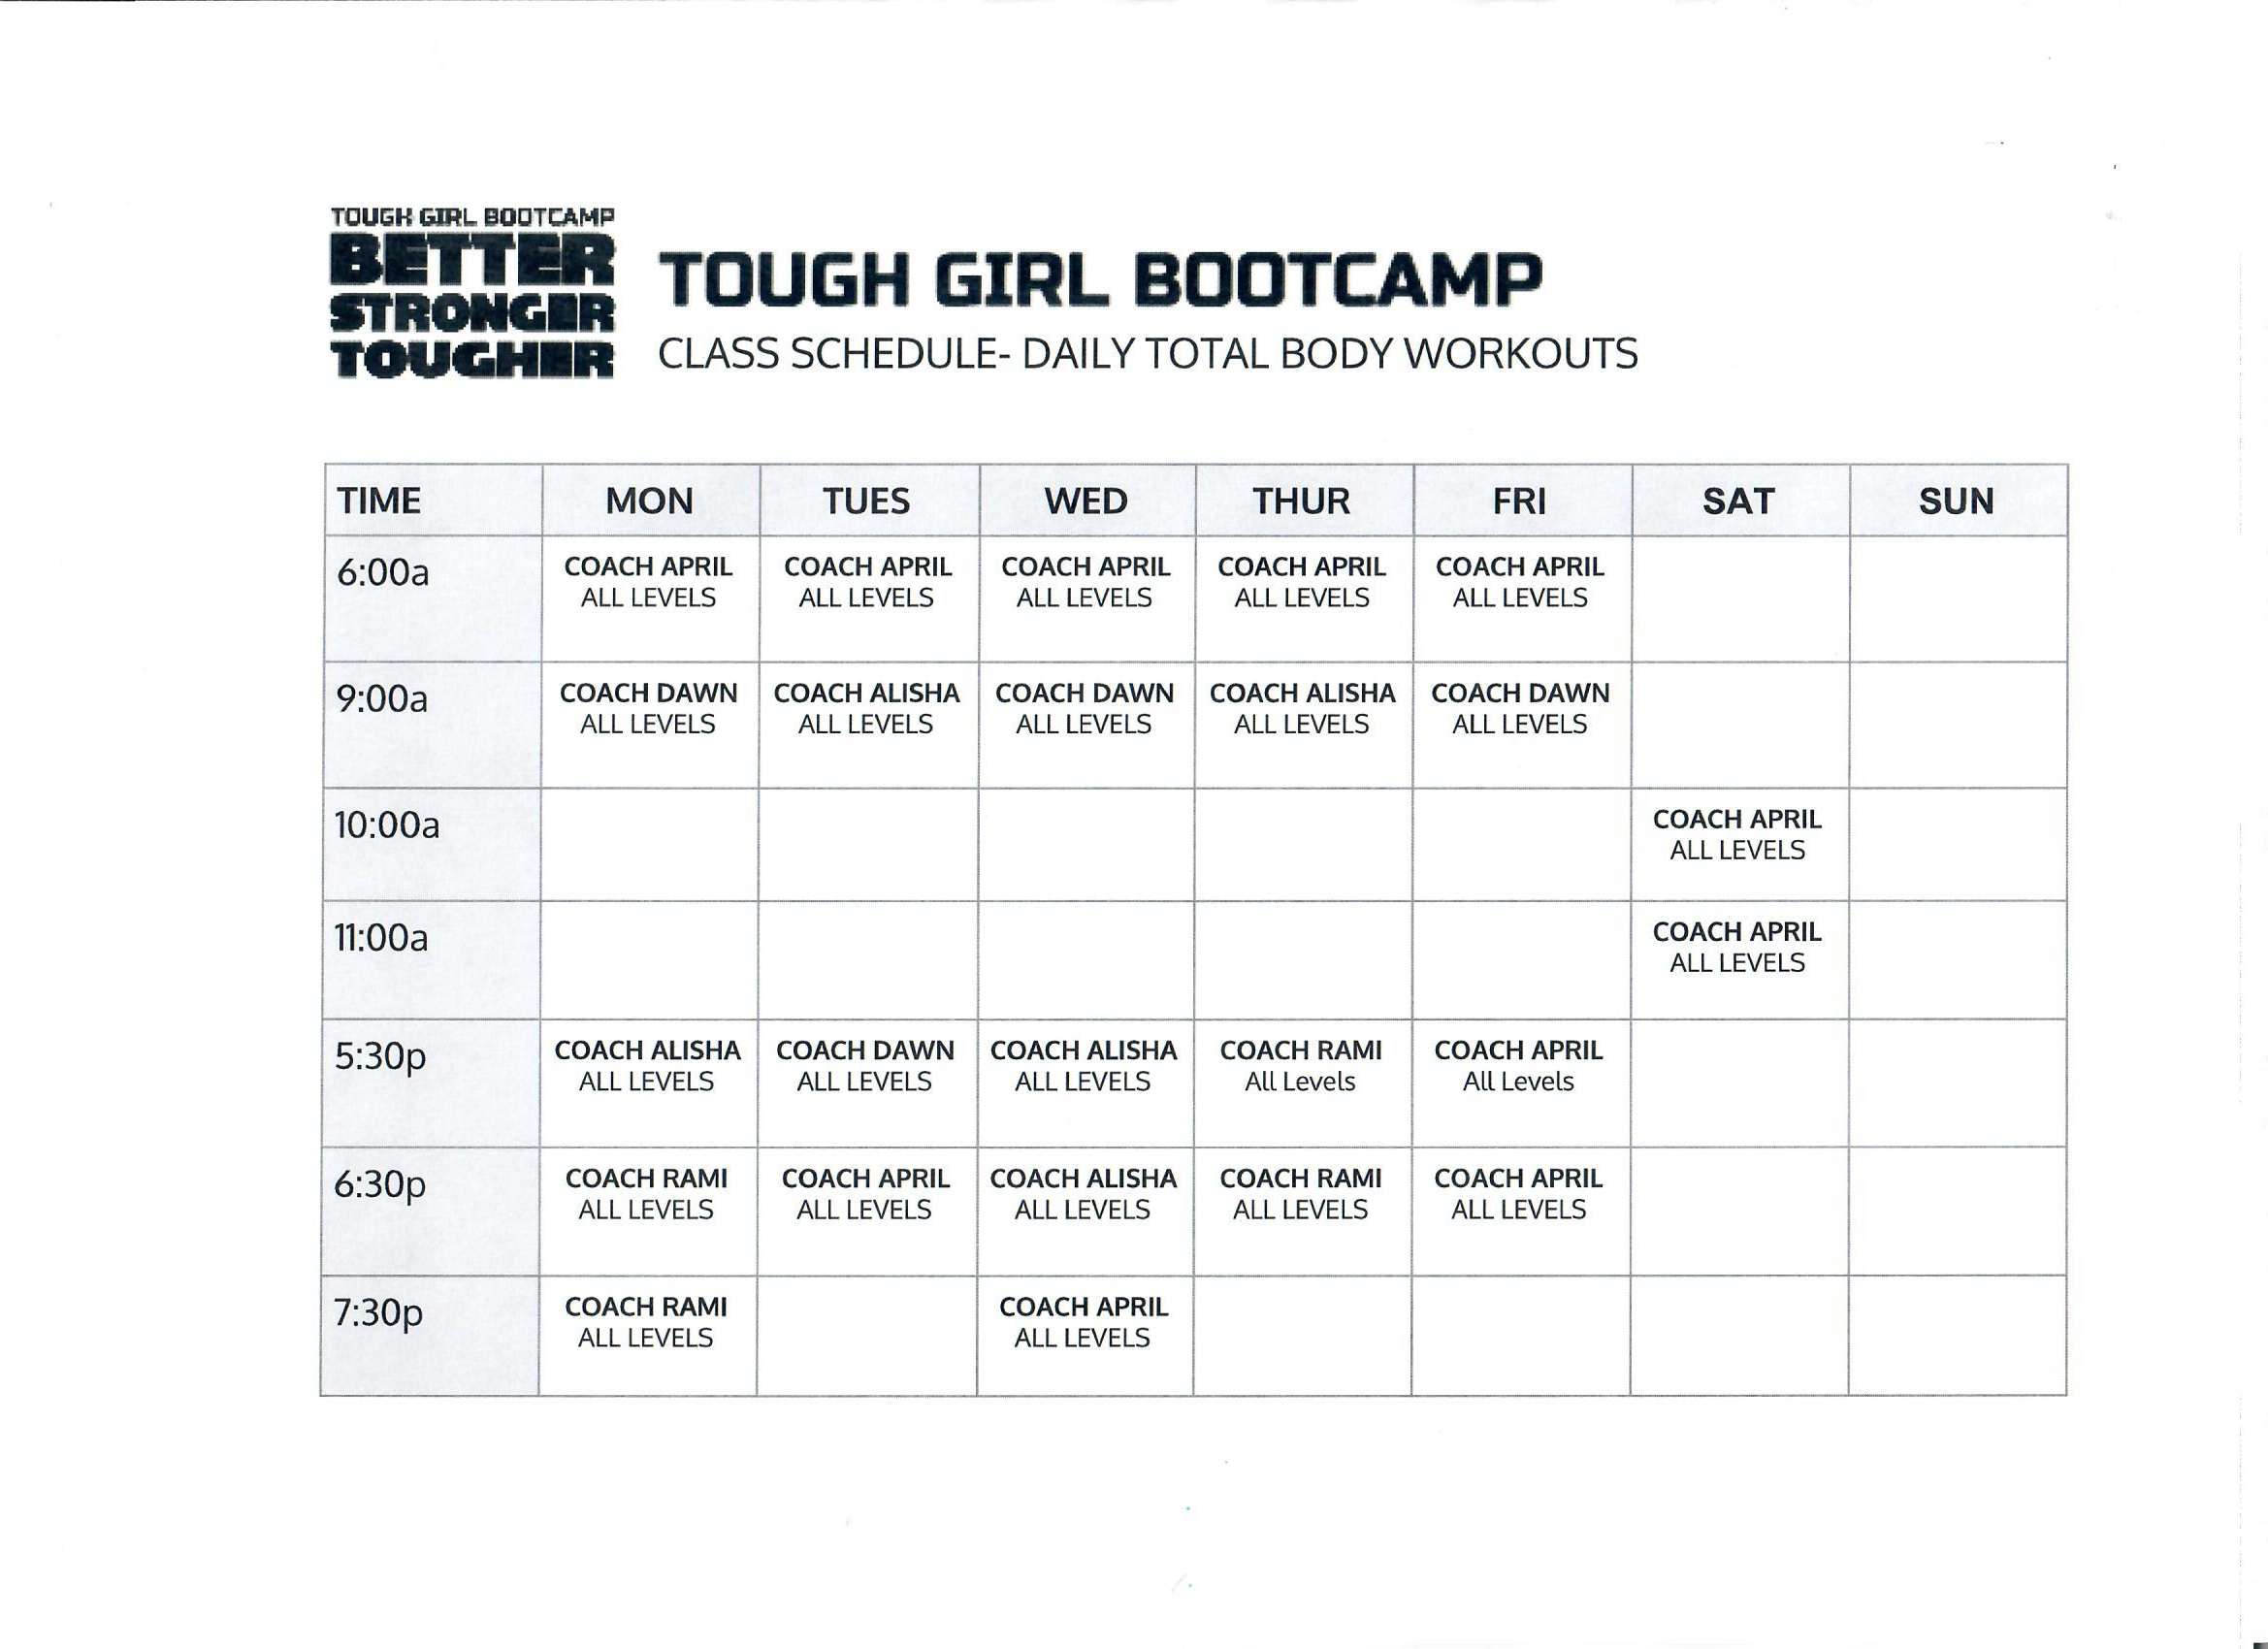 bootcamp schedule 001.jpg